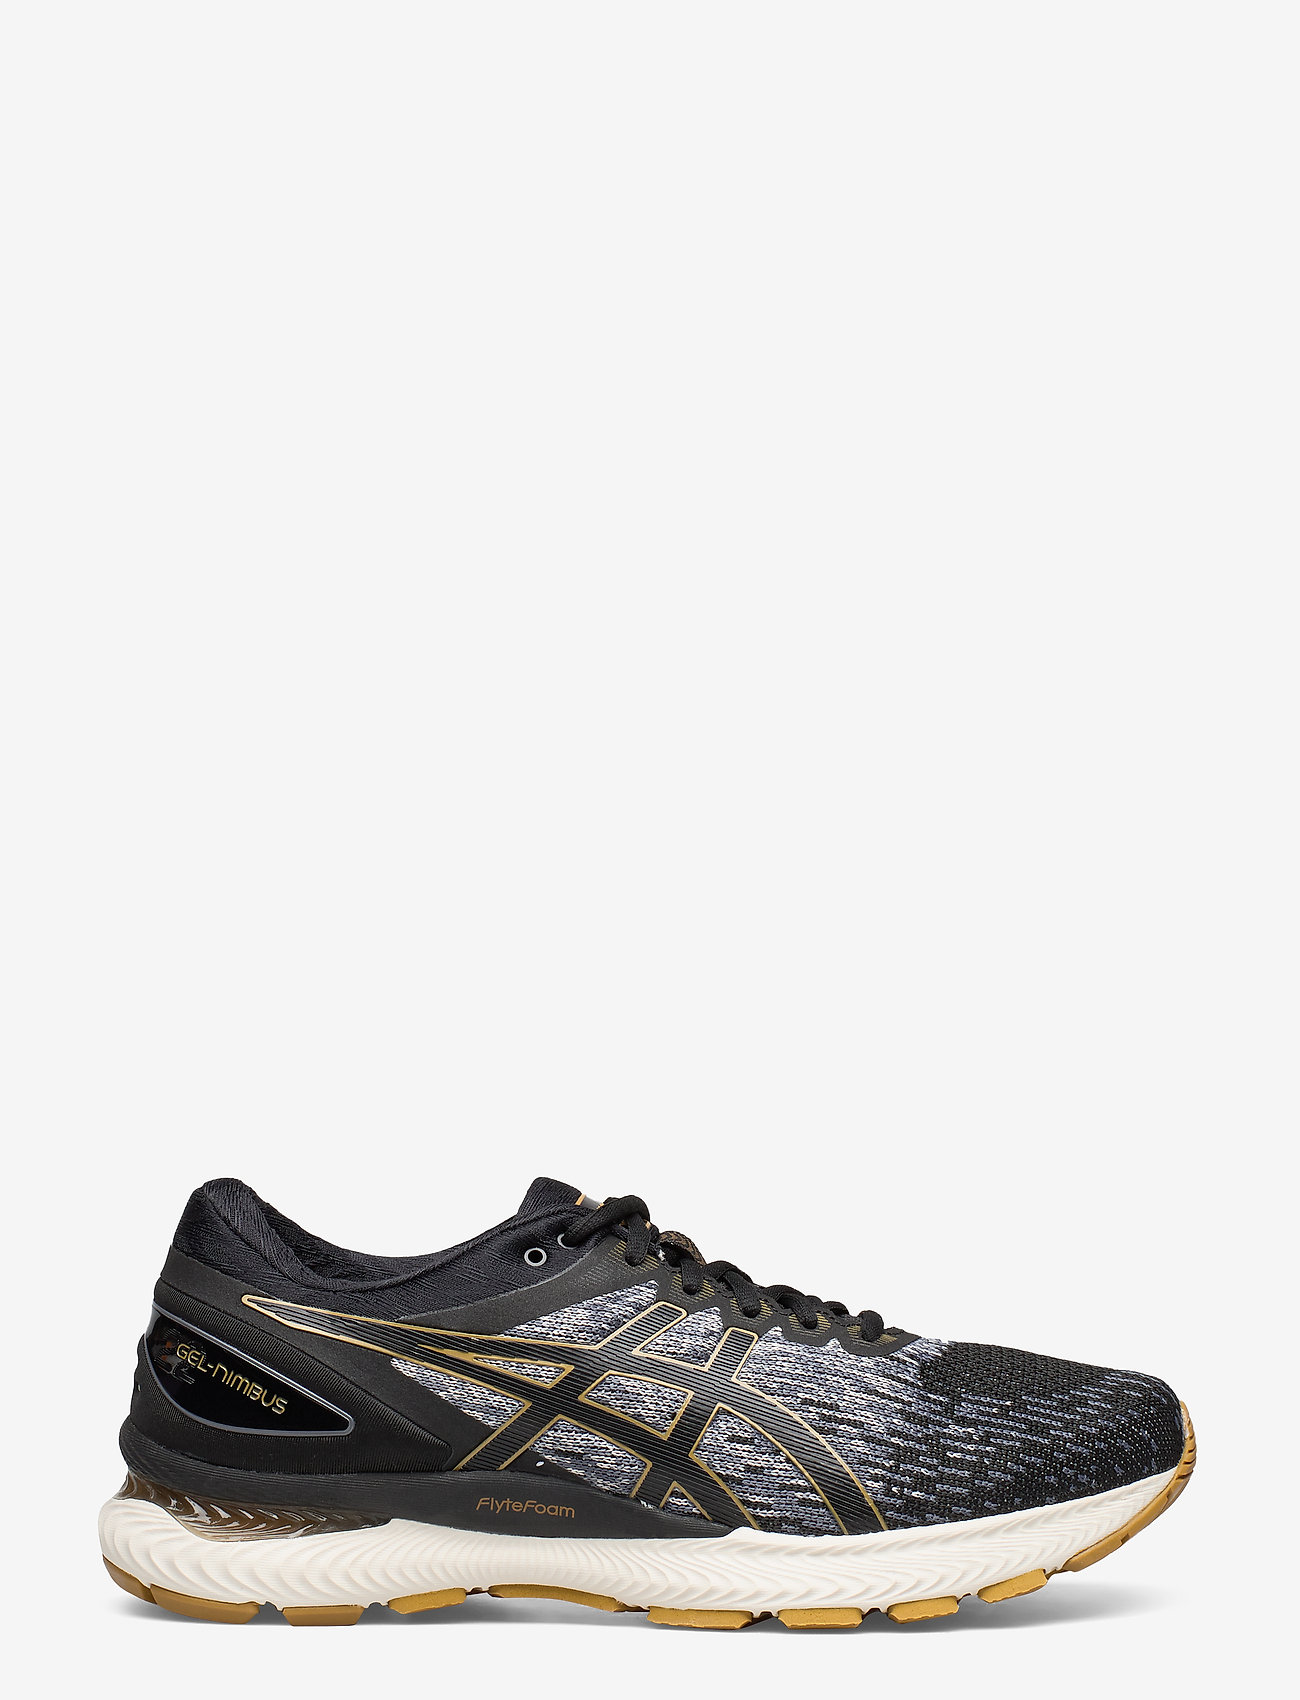 Gel-nimbus 22 Knit (Black/black) (180 €) - Asics 5Bo1w3vP